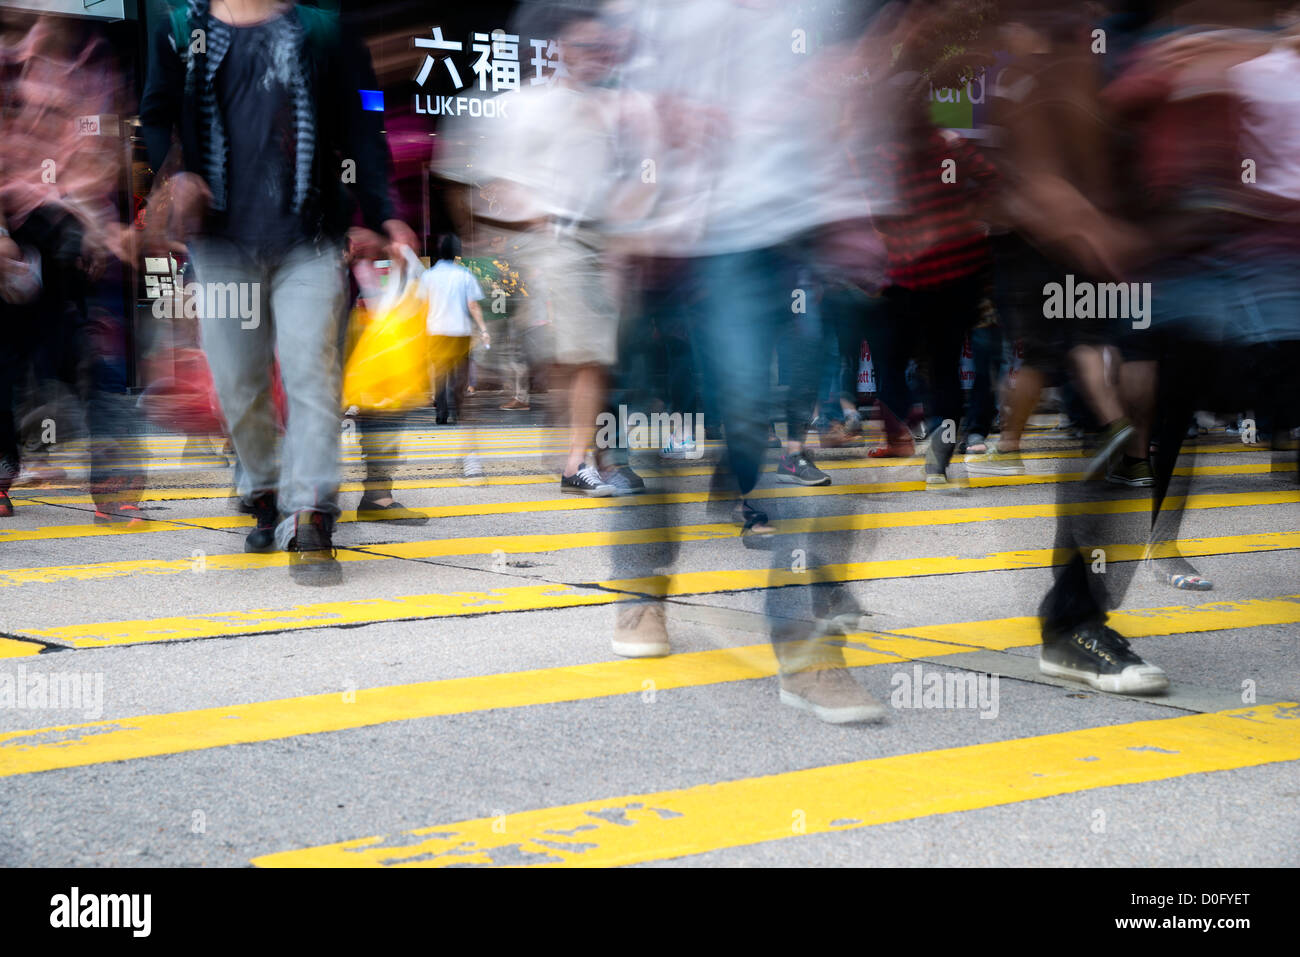 Pedestrians in blurred motion while crossing Nathan Road, Kowloon, Hong Kong, China - Stock Image